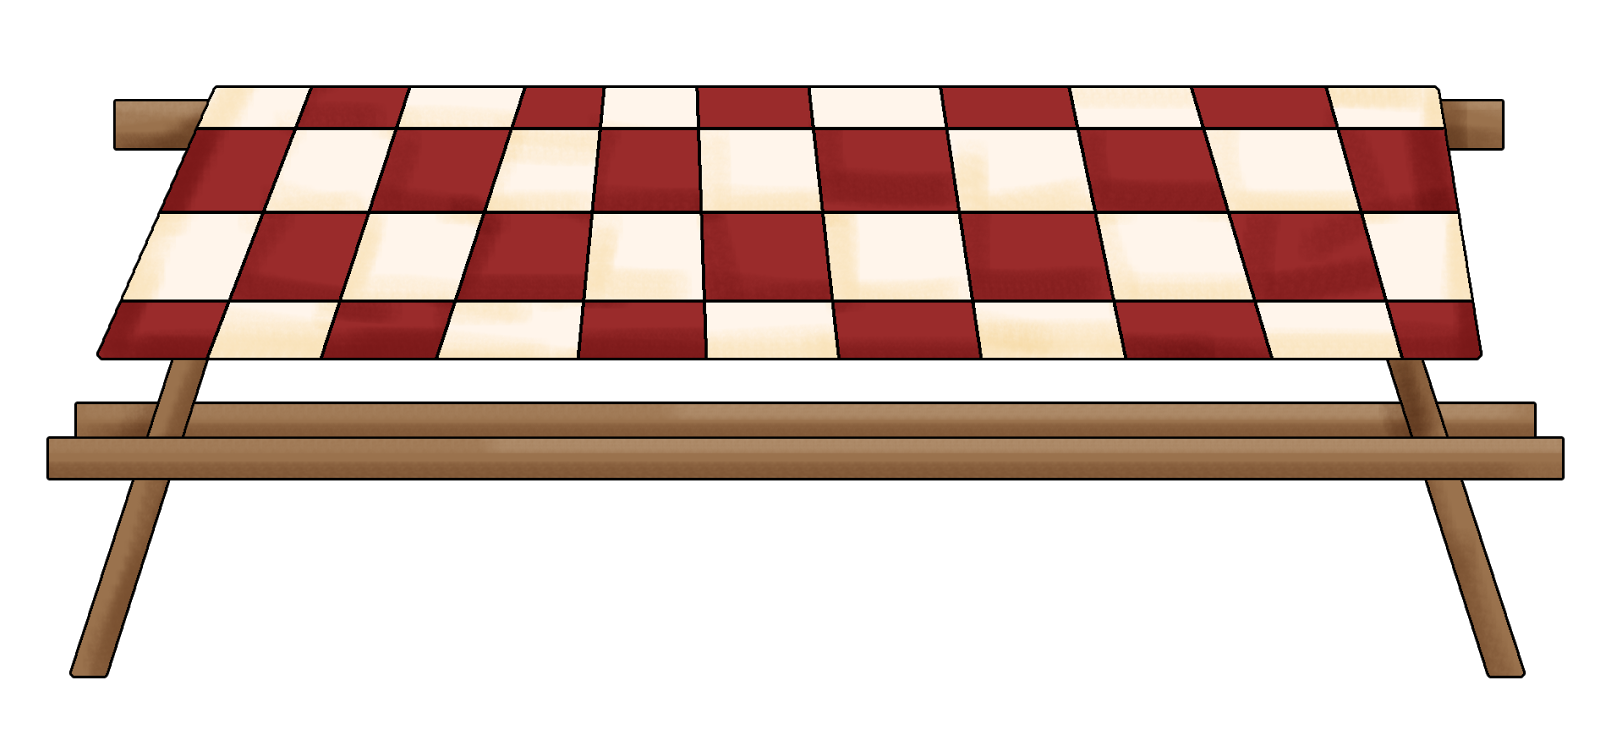 Family picnic table clipart free images 2